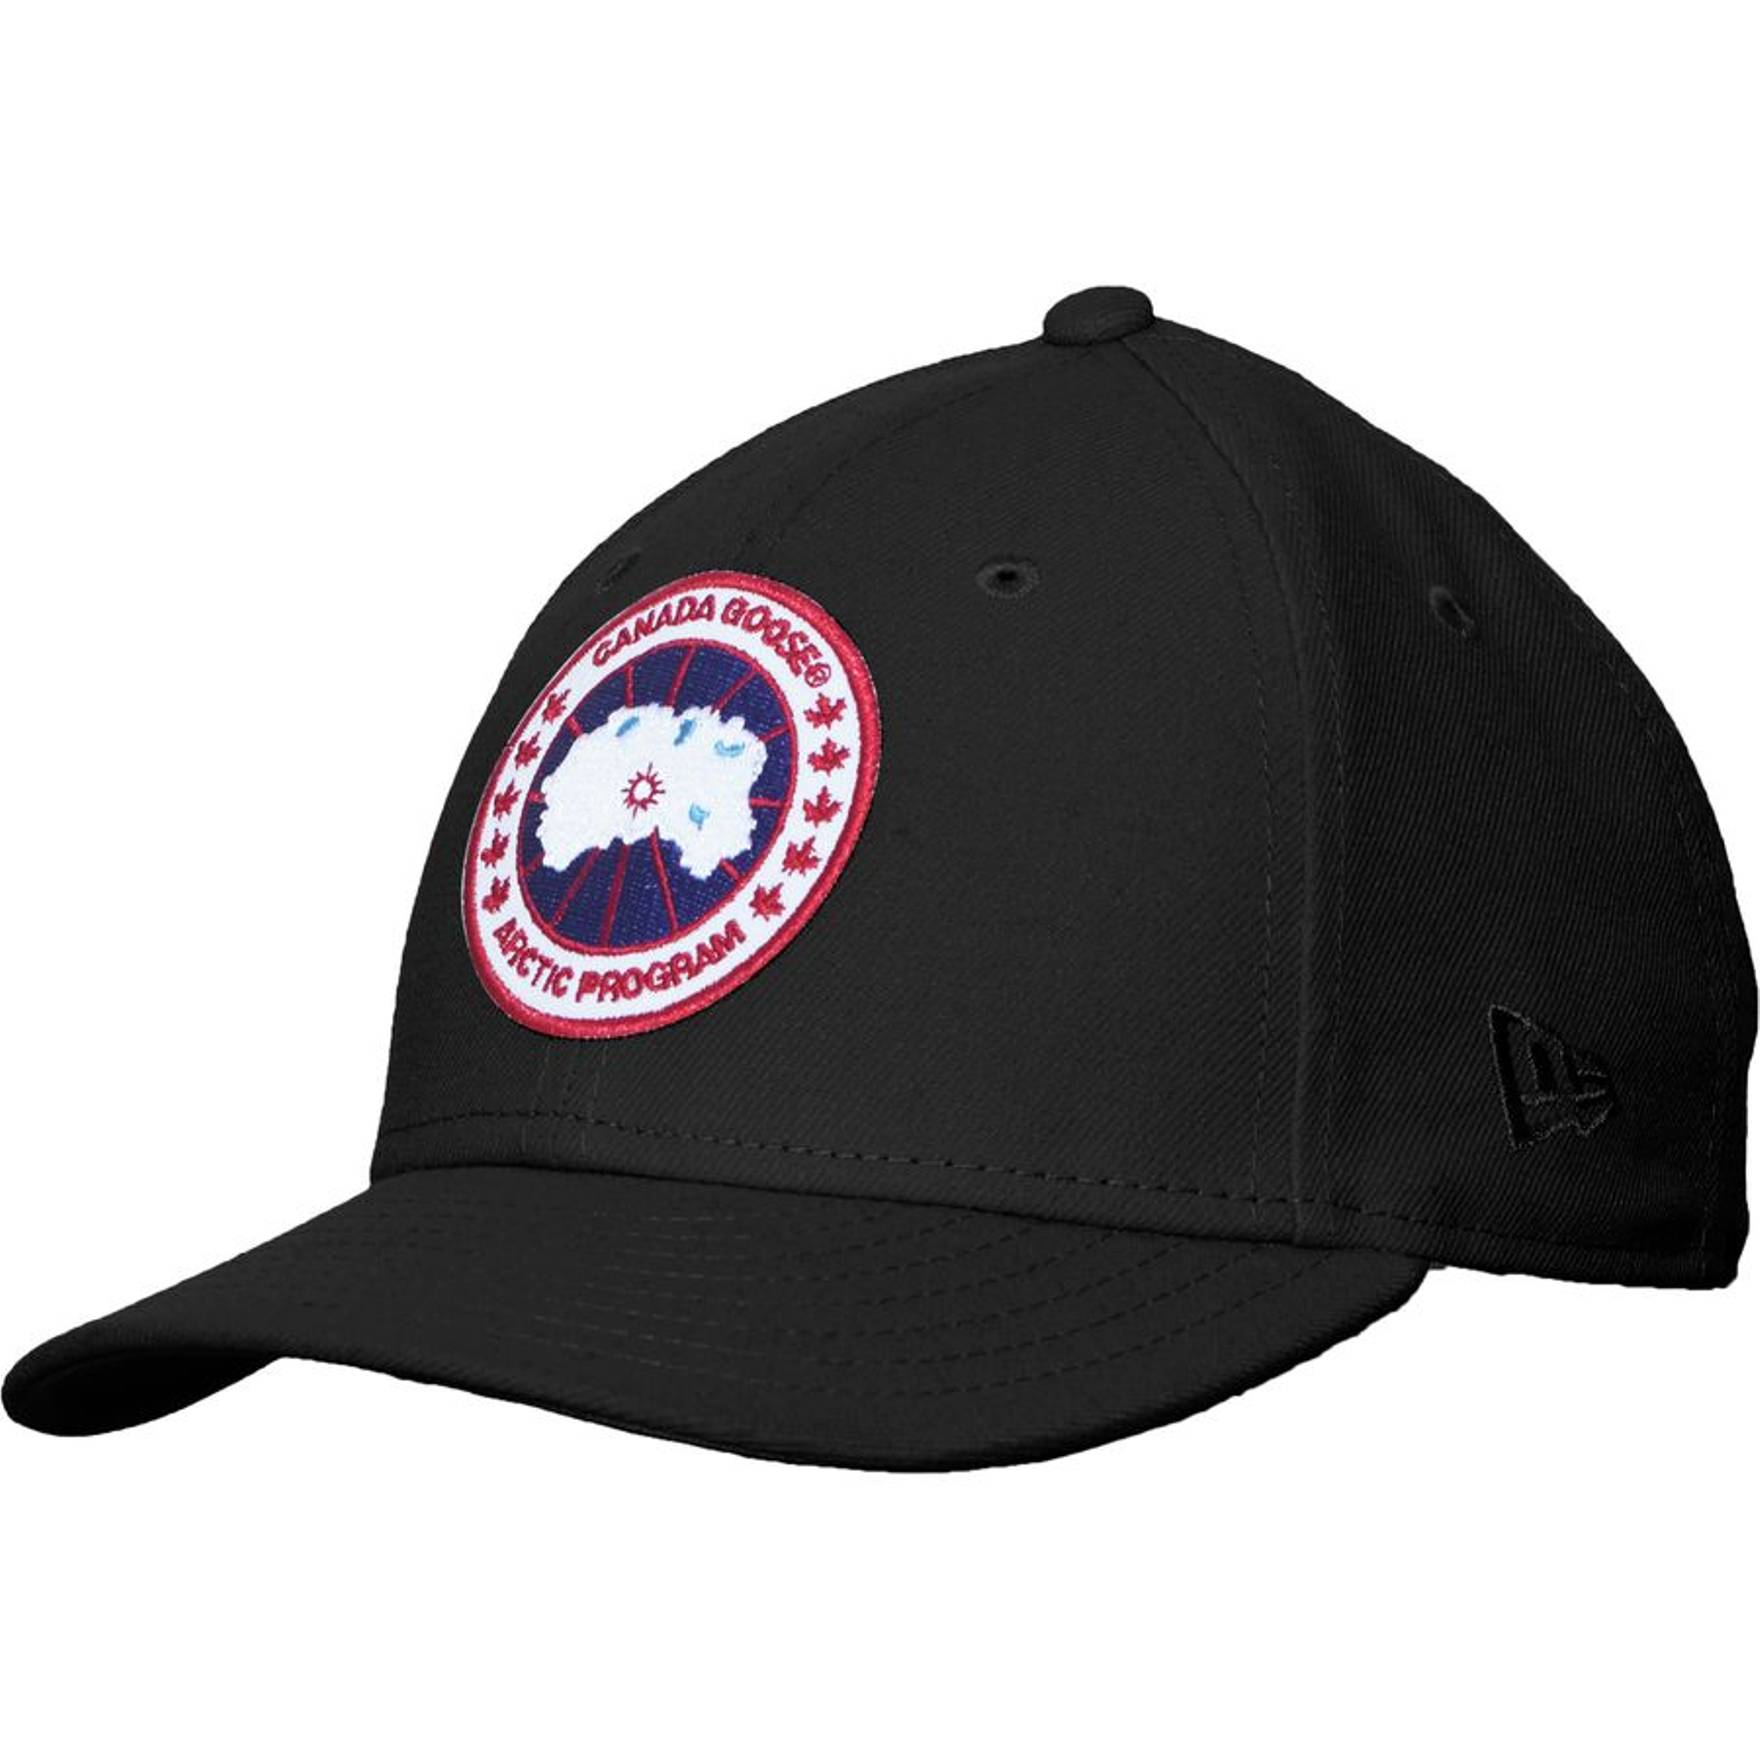 Canada Goose Canada Goose cap Size one size - Hats for Sale - Grailed 3822684ca73